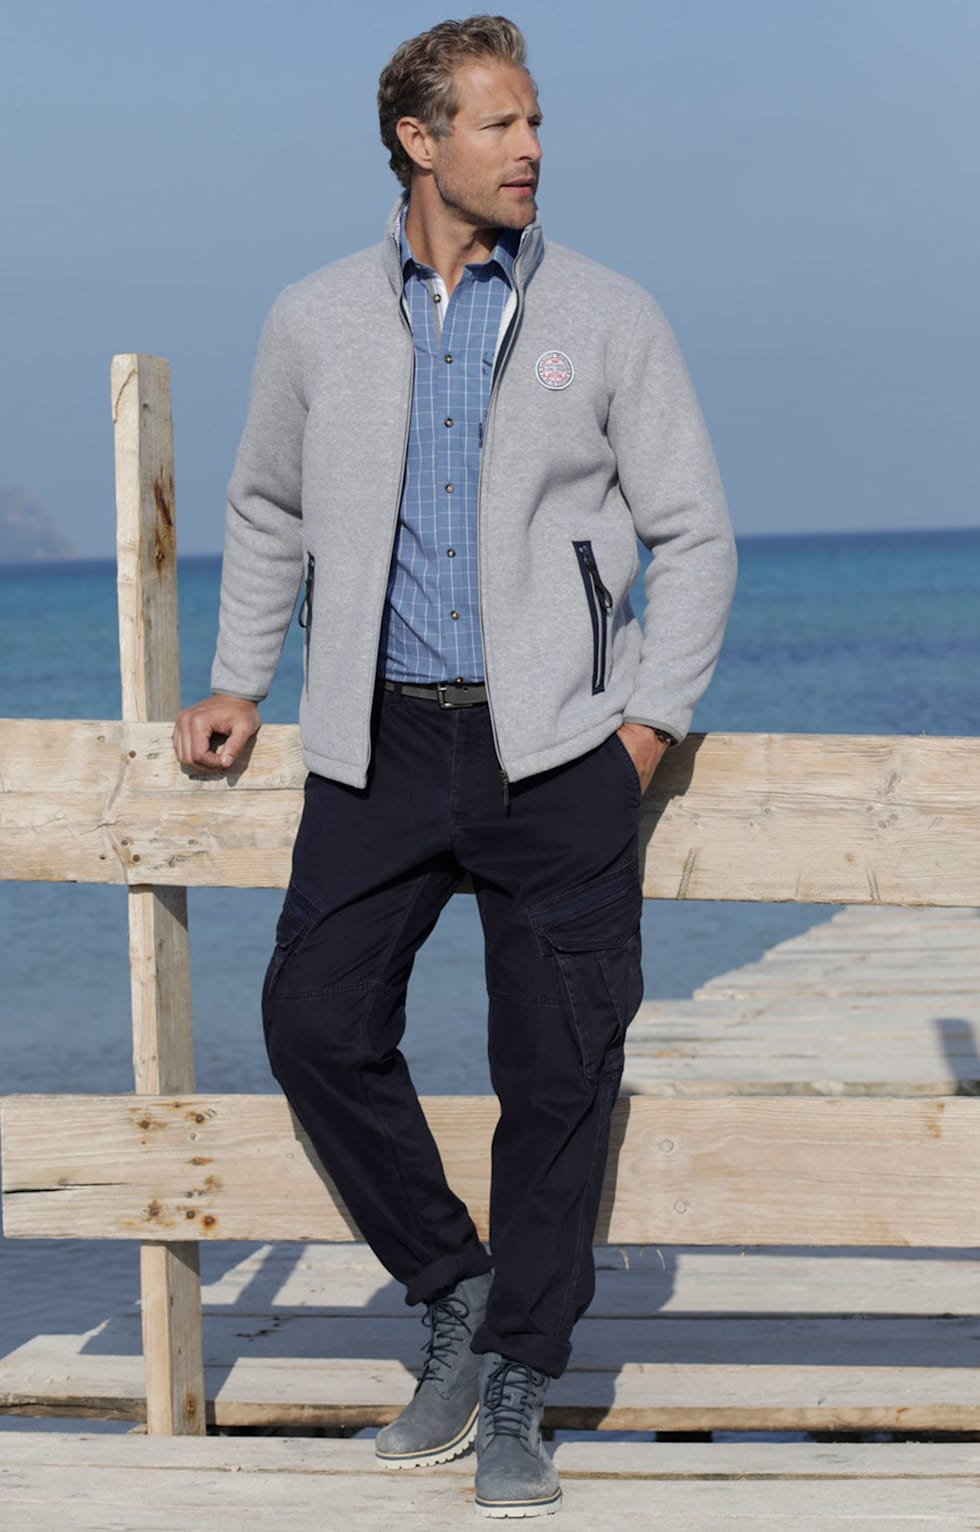 Outfits: Marittimo